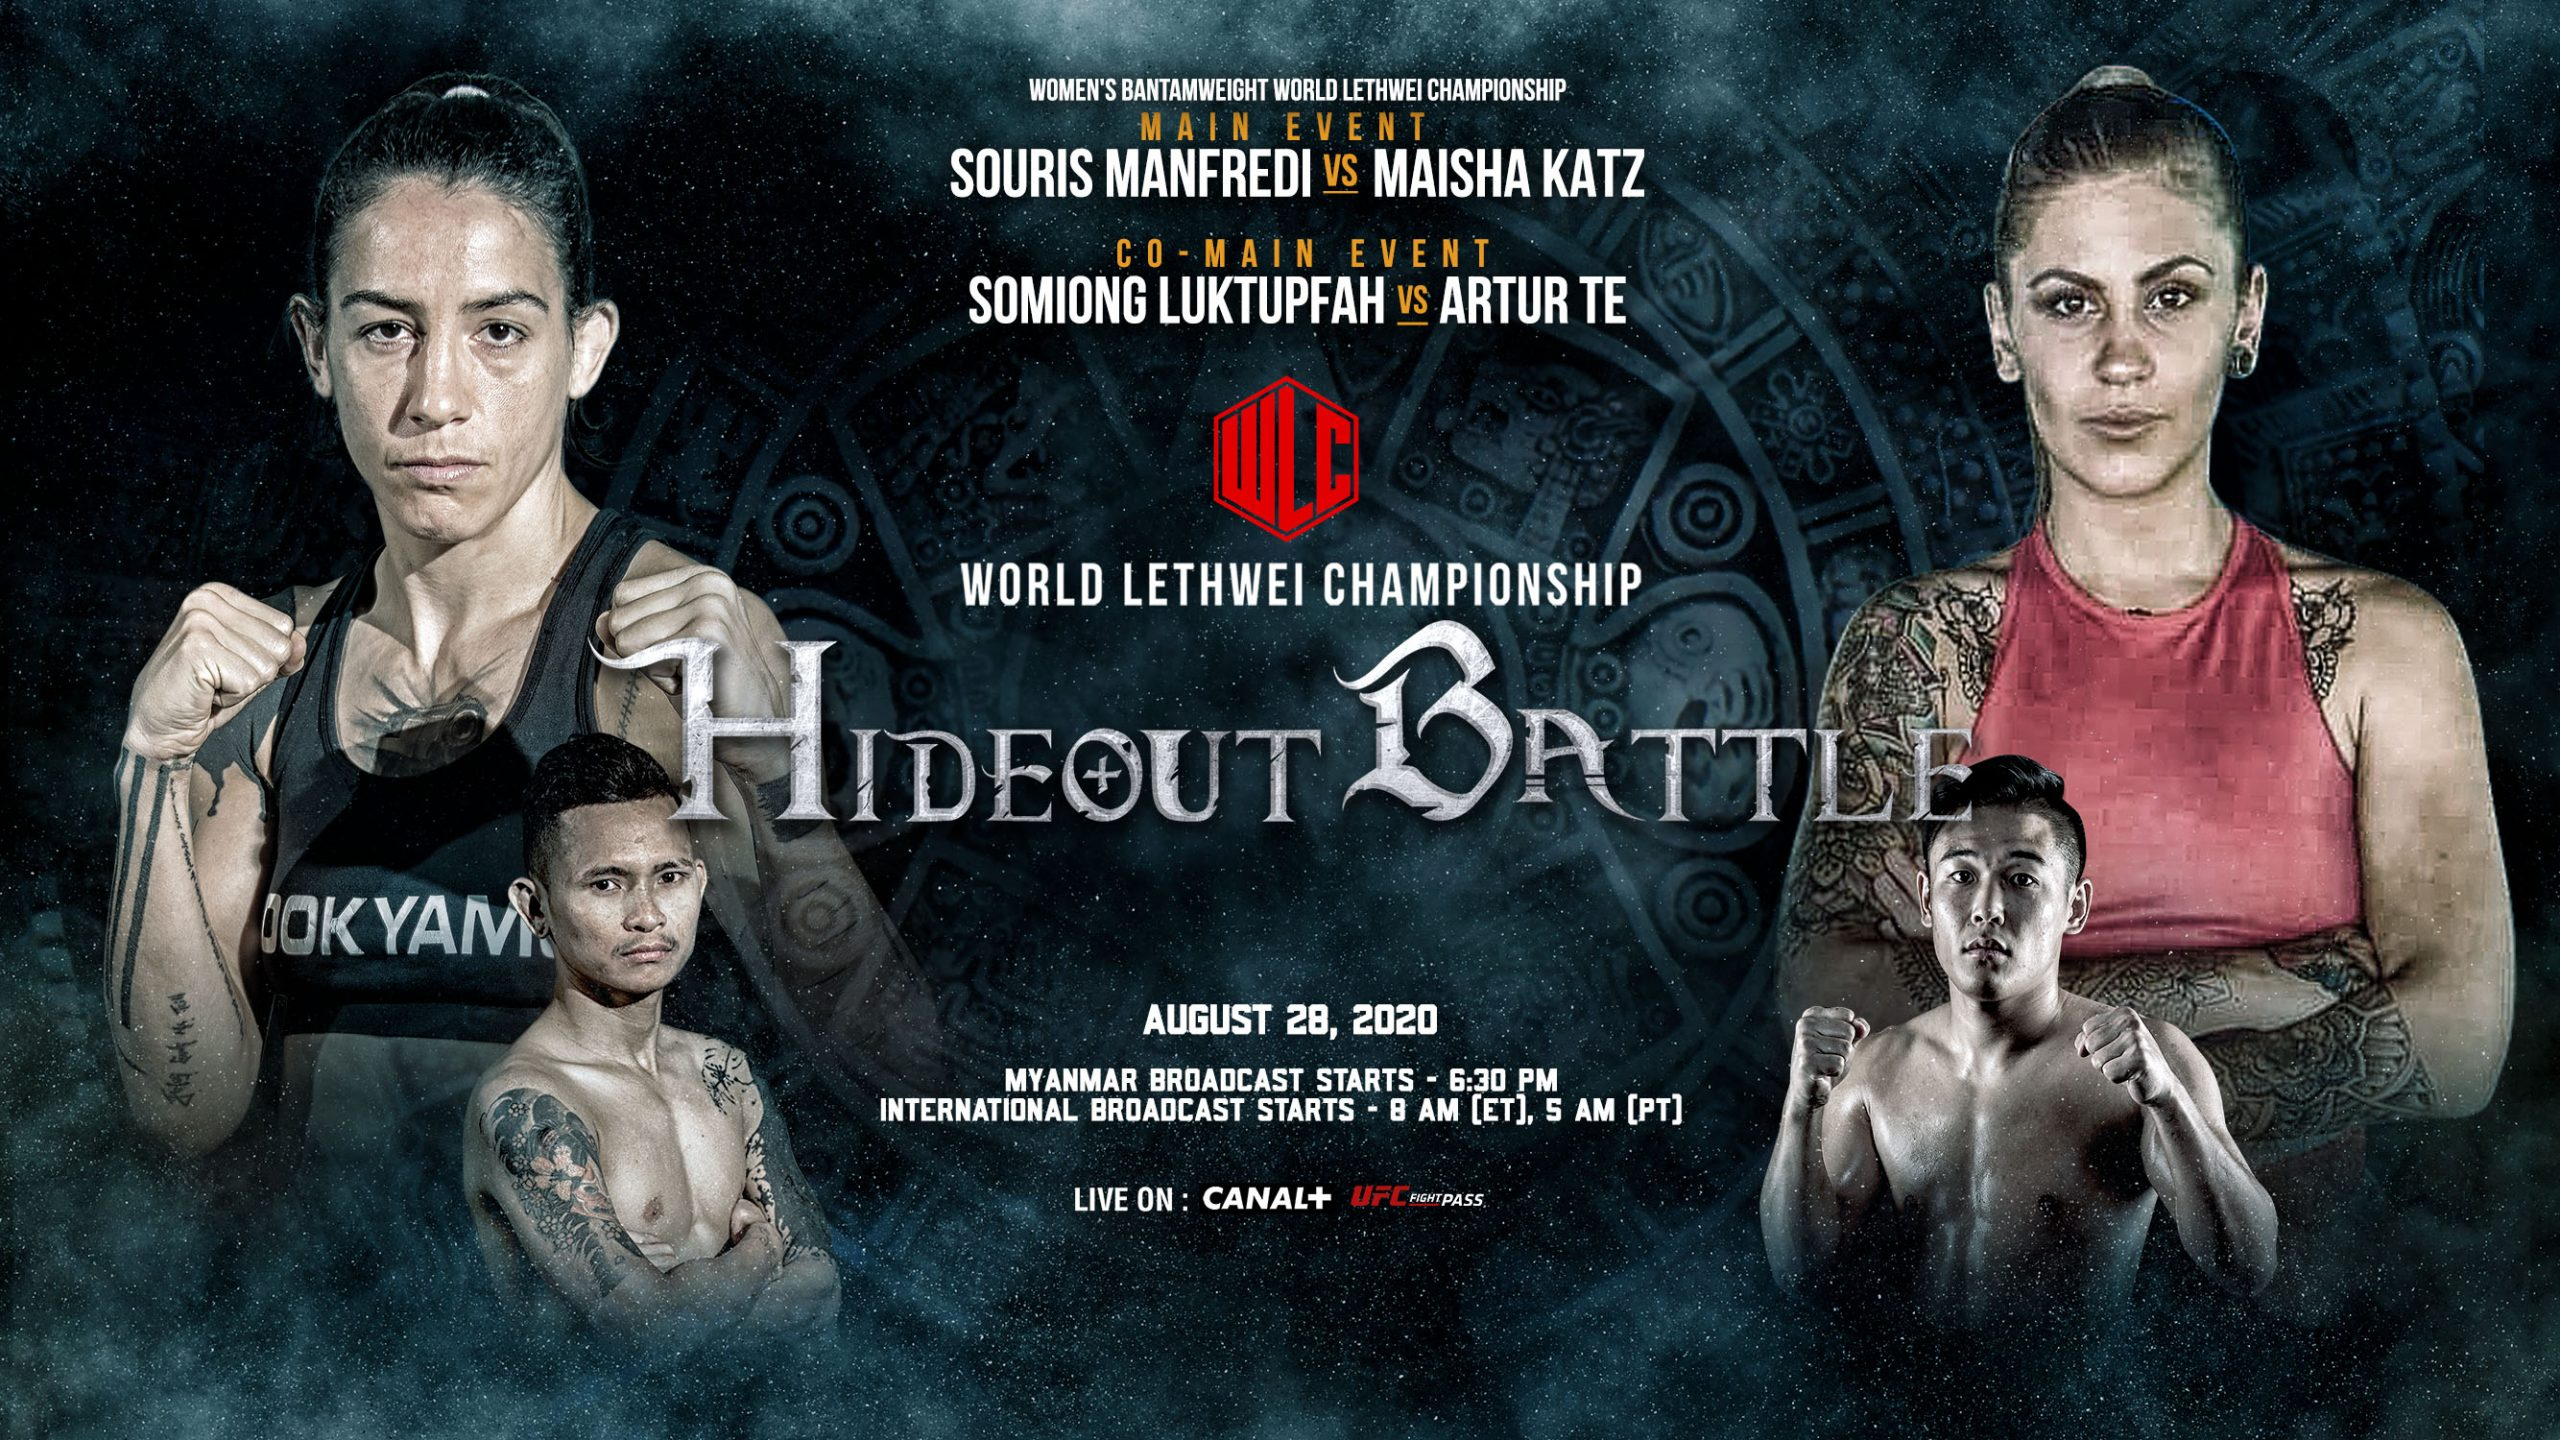 World Lethwei Championship WLC: Hideout Battle Souris Manfredi vs Maisha Katz